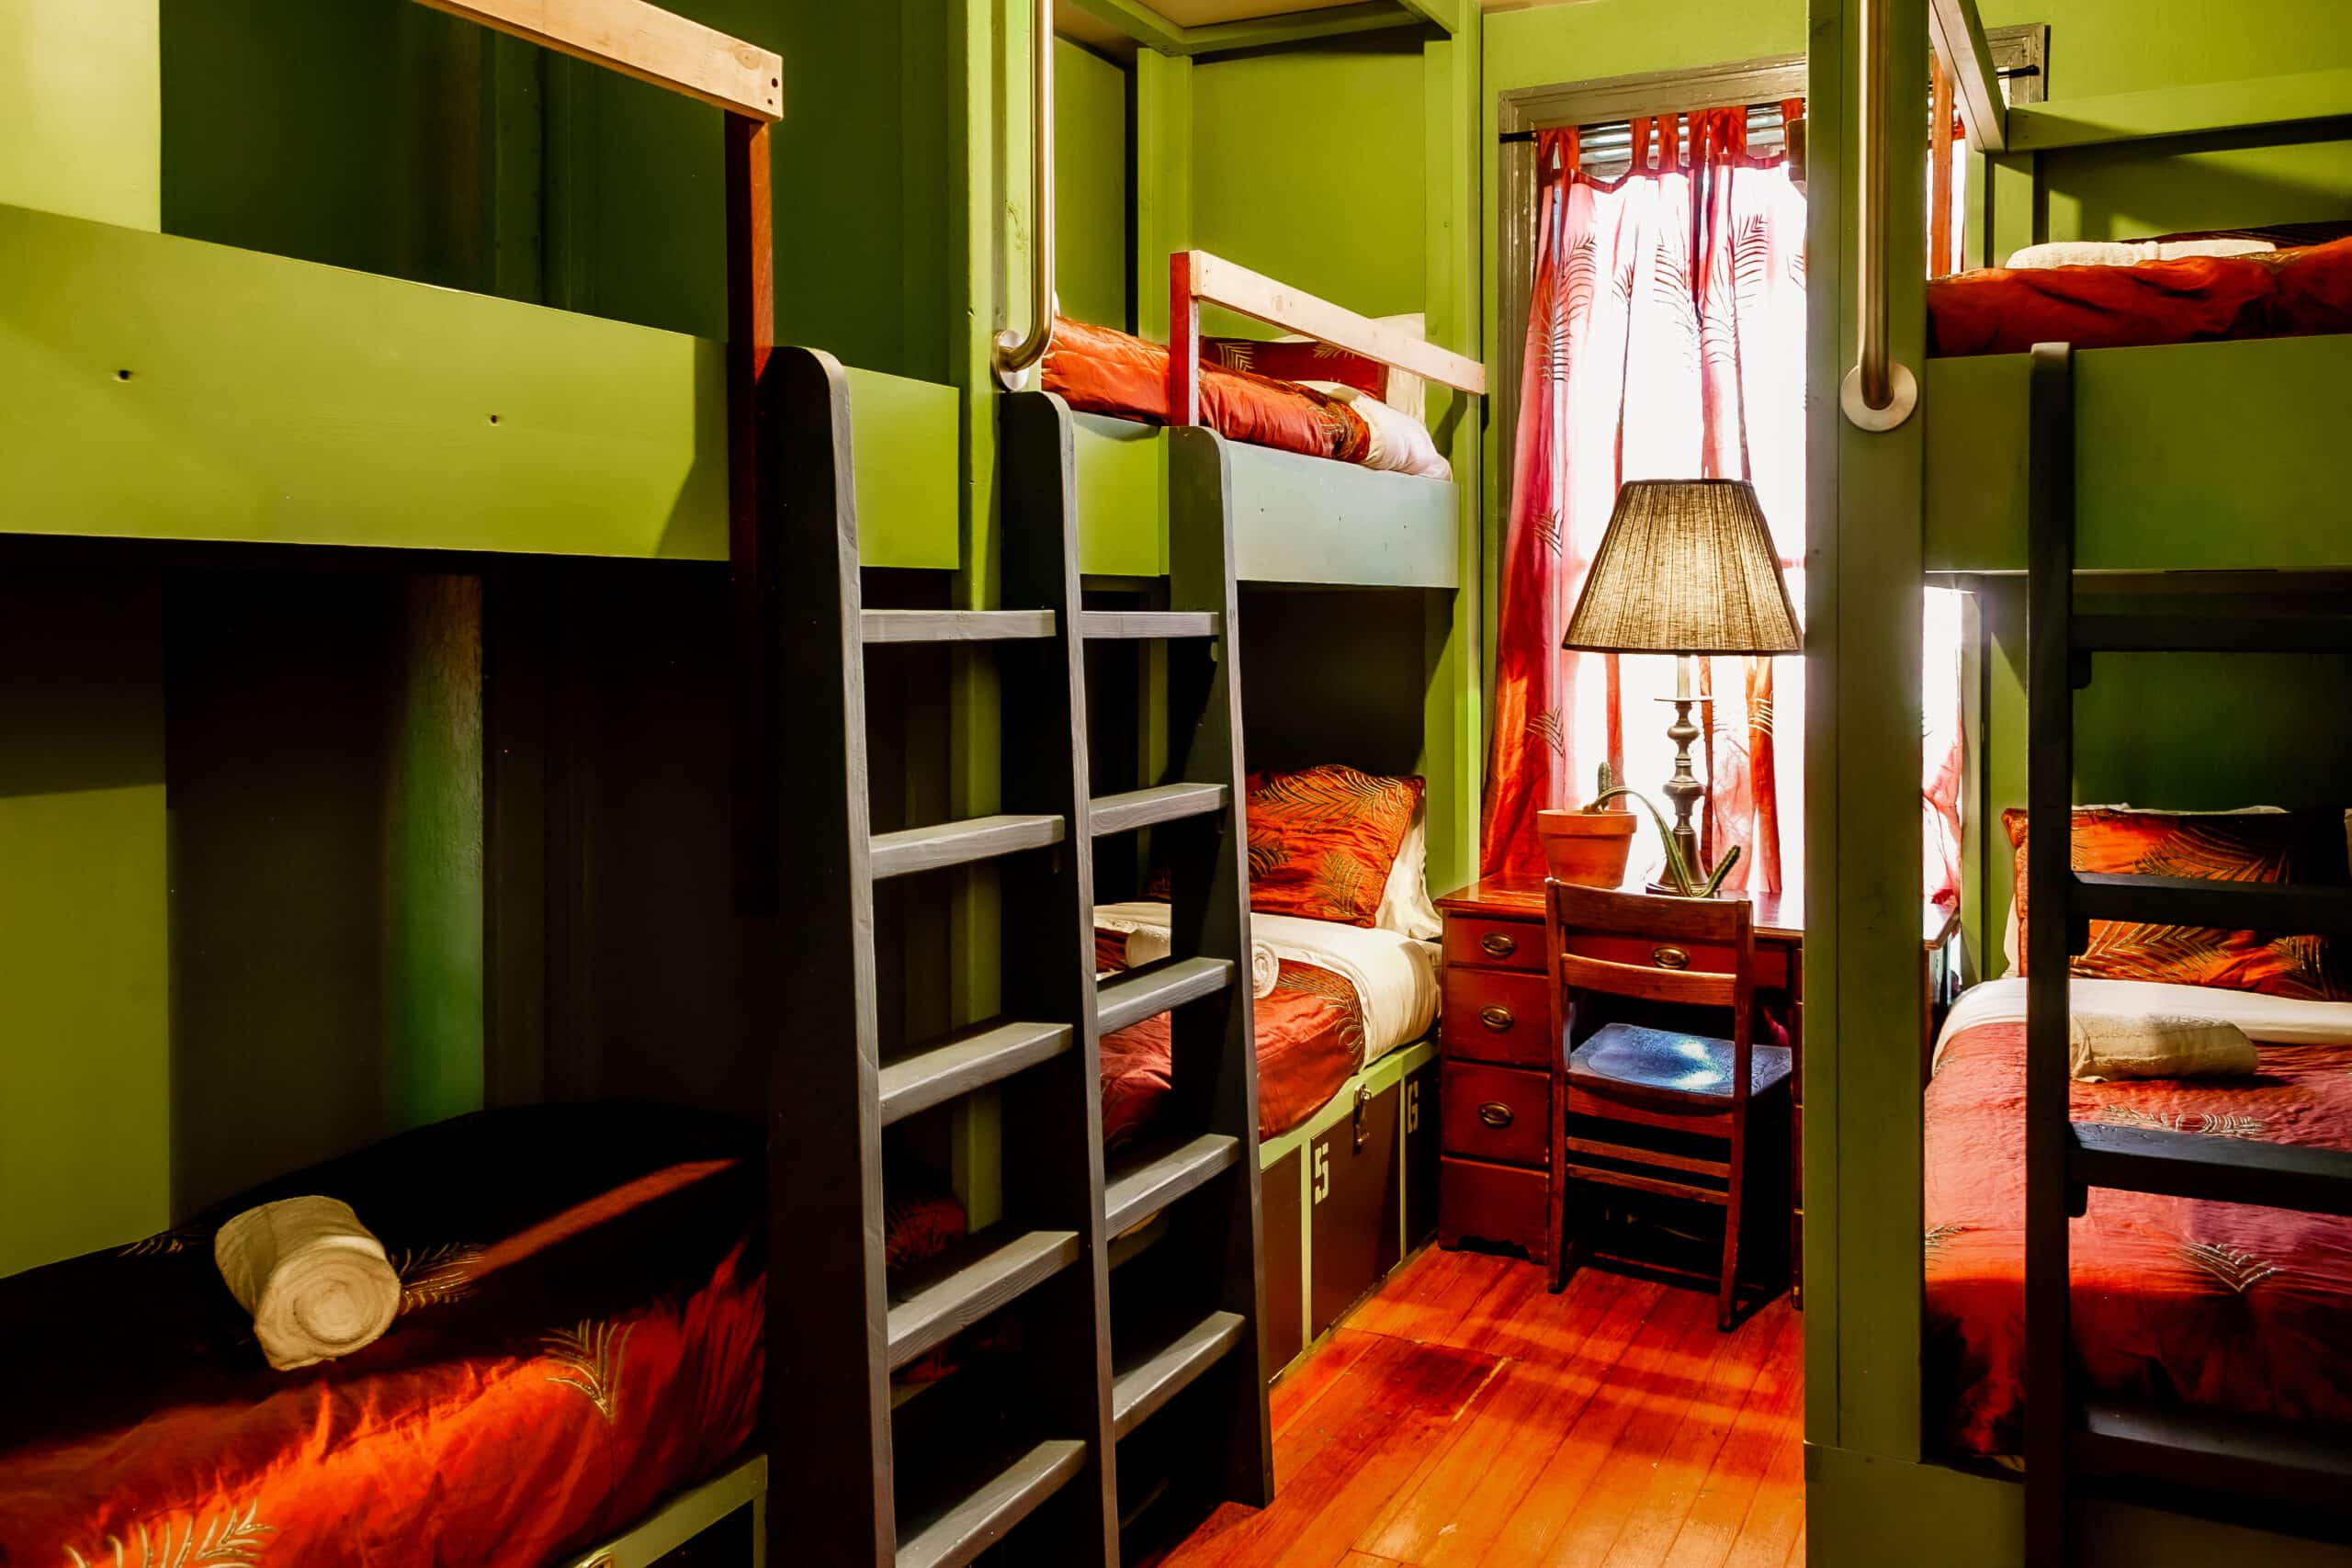 high style bunk room at the good will engine company micro hotel in providence, ri